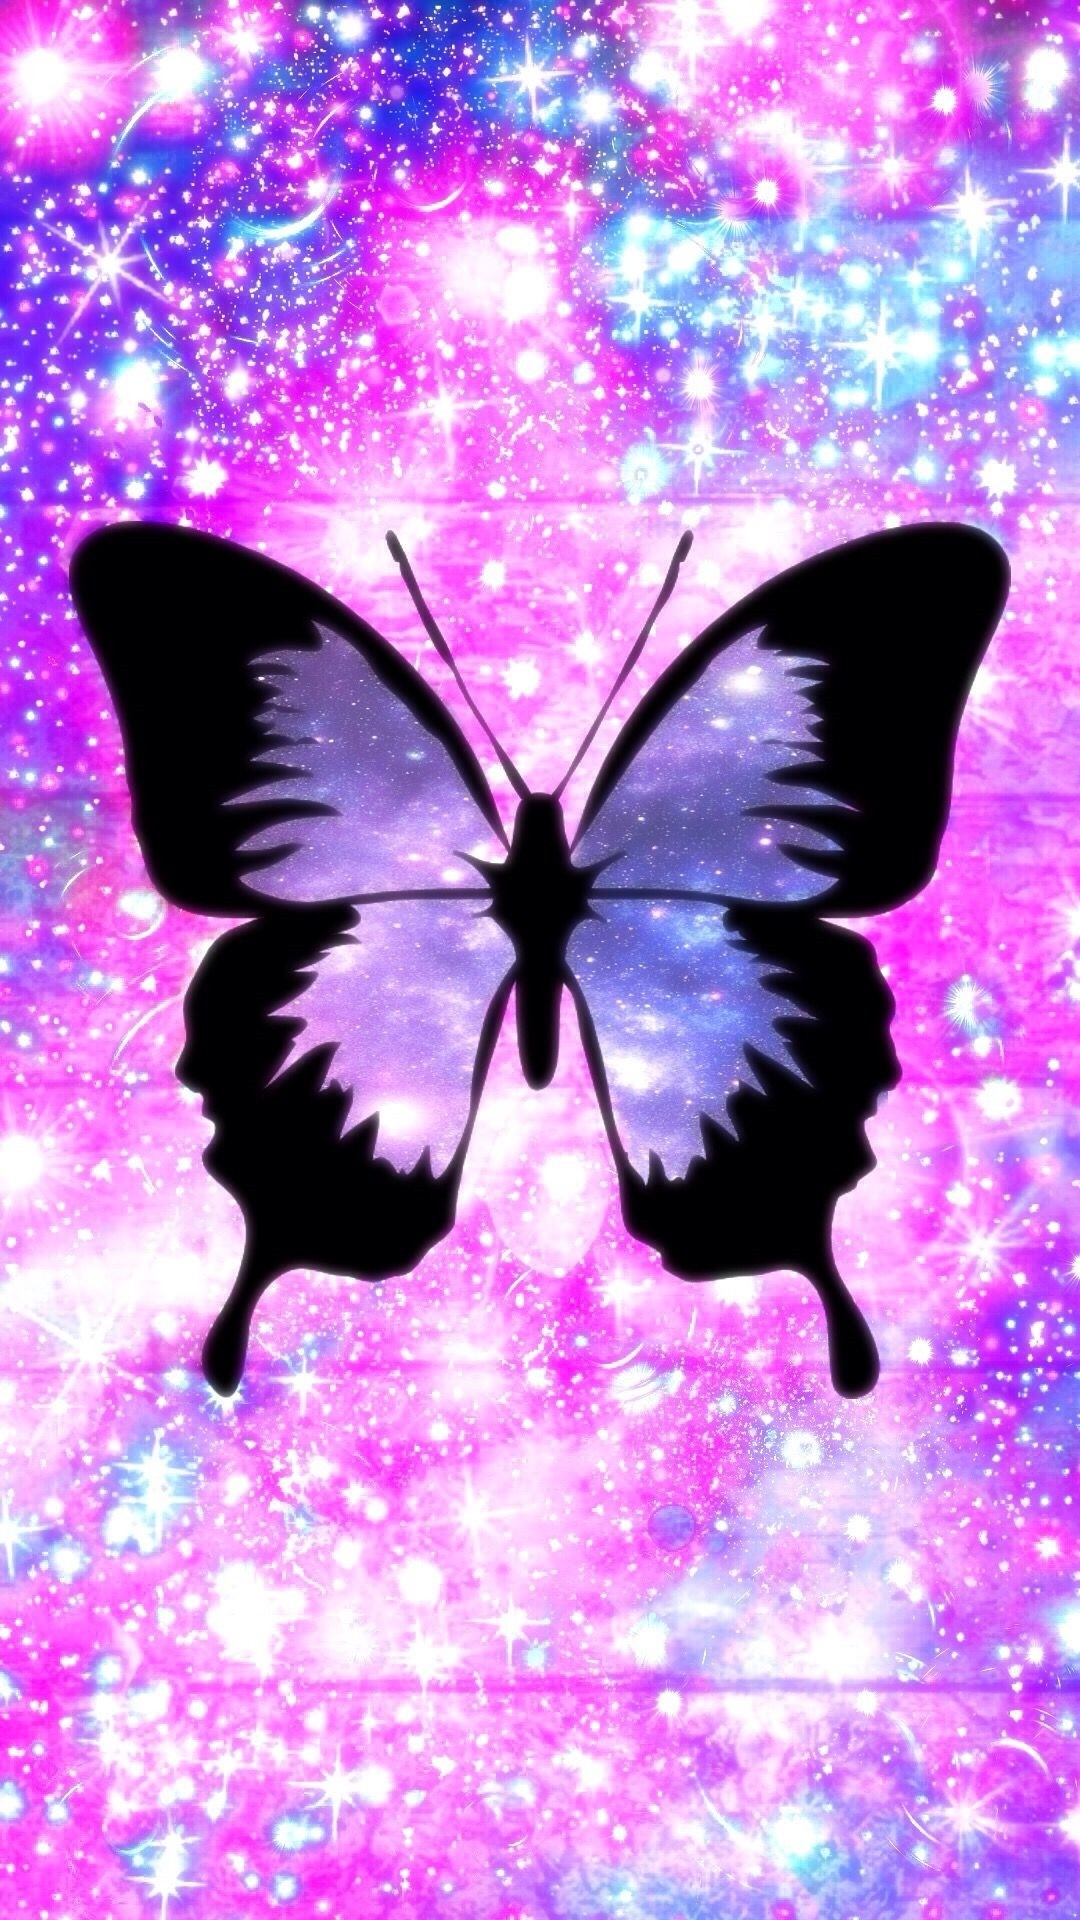 Aesthetic Butterfly iphone 6 wallpaper